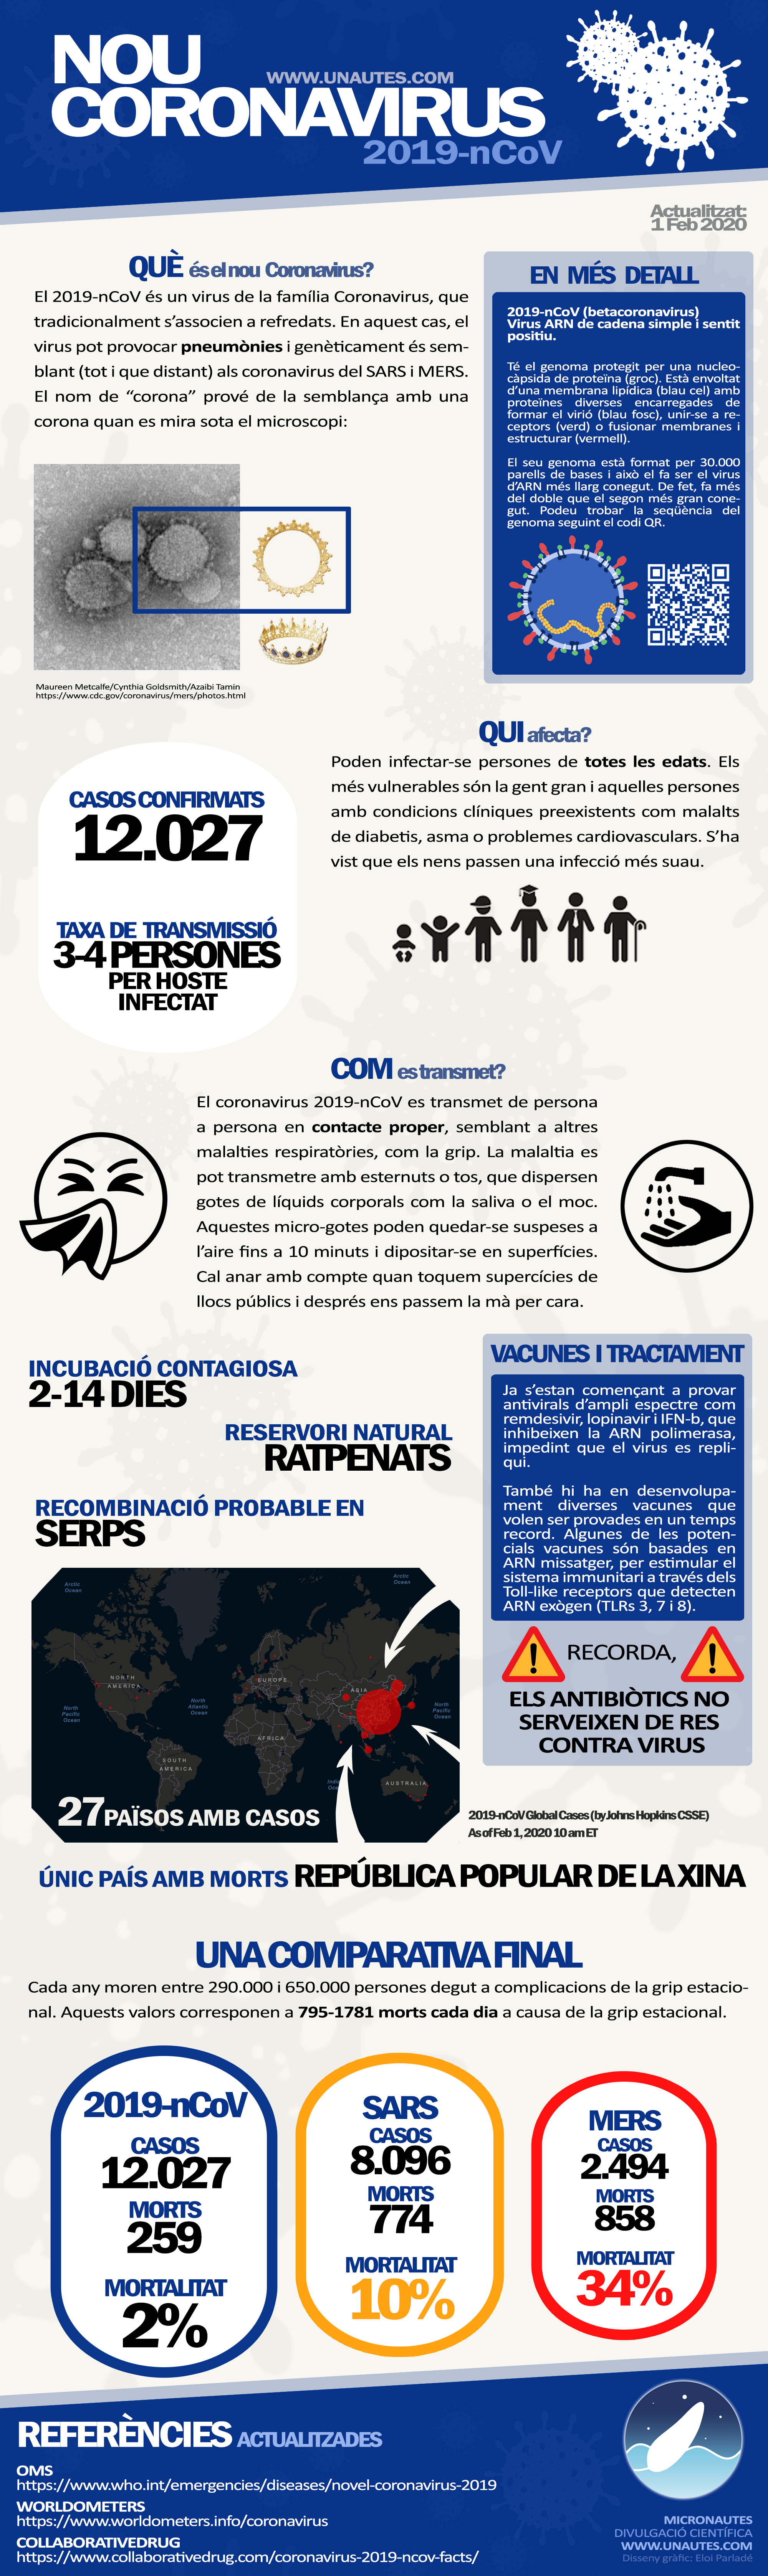 coronavirus unautes micronautes eloi parlade sars infection virus respiratori respiratory refredat grip pneumonia pneumony infografic infográfico infographic map 27 countries infection infected infeccio infectats xina china comparativa ratpenats bats snakes serps murcielagos muertes mortalidad morts mortalitat deaths mortality transmission transmissió transmisión prevención prevenir contagio contagi infection disease malaltia